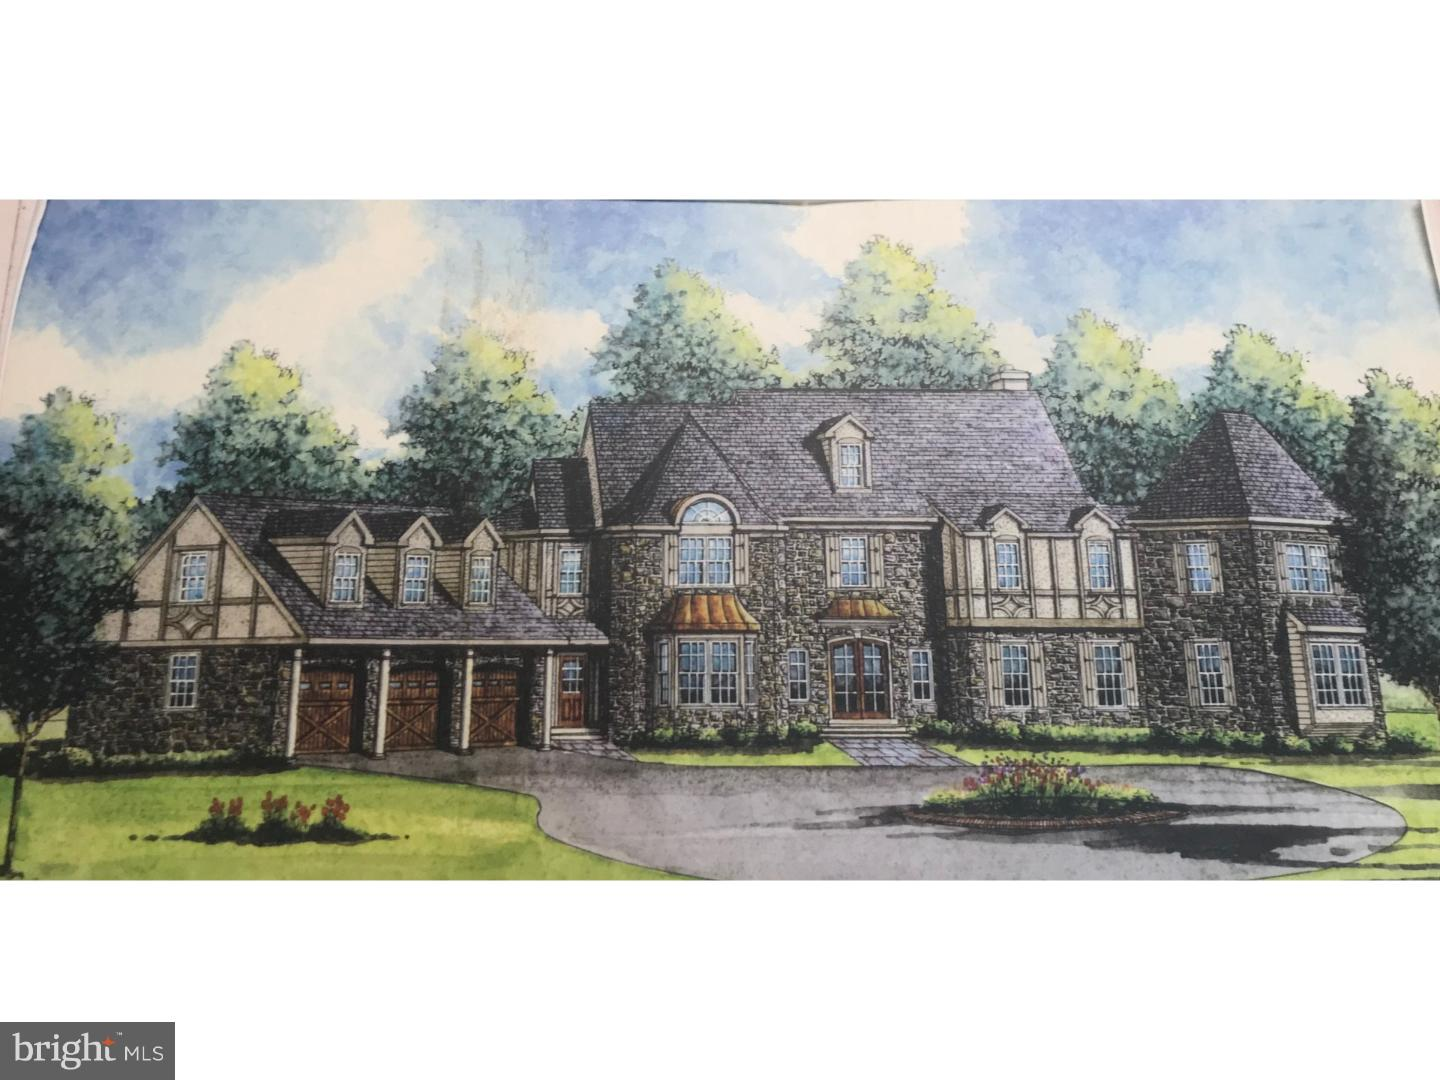 12,14 MAPLE LANE, CHADDS FORD, PA 19317